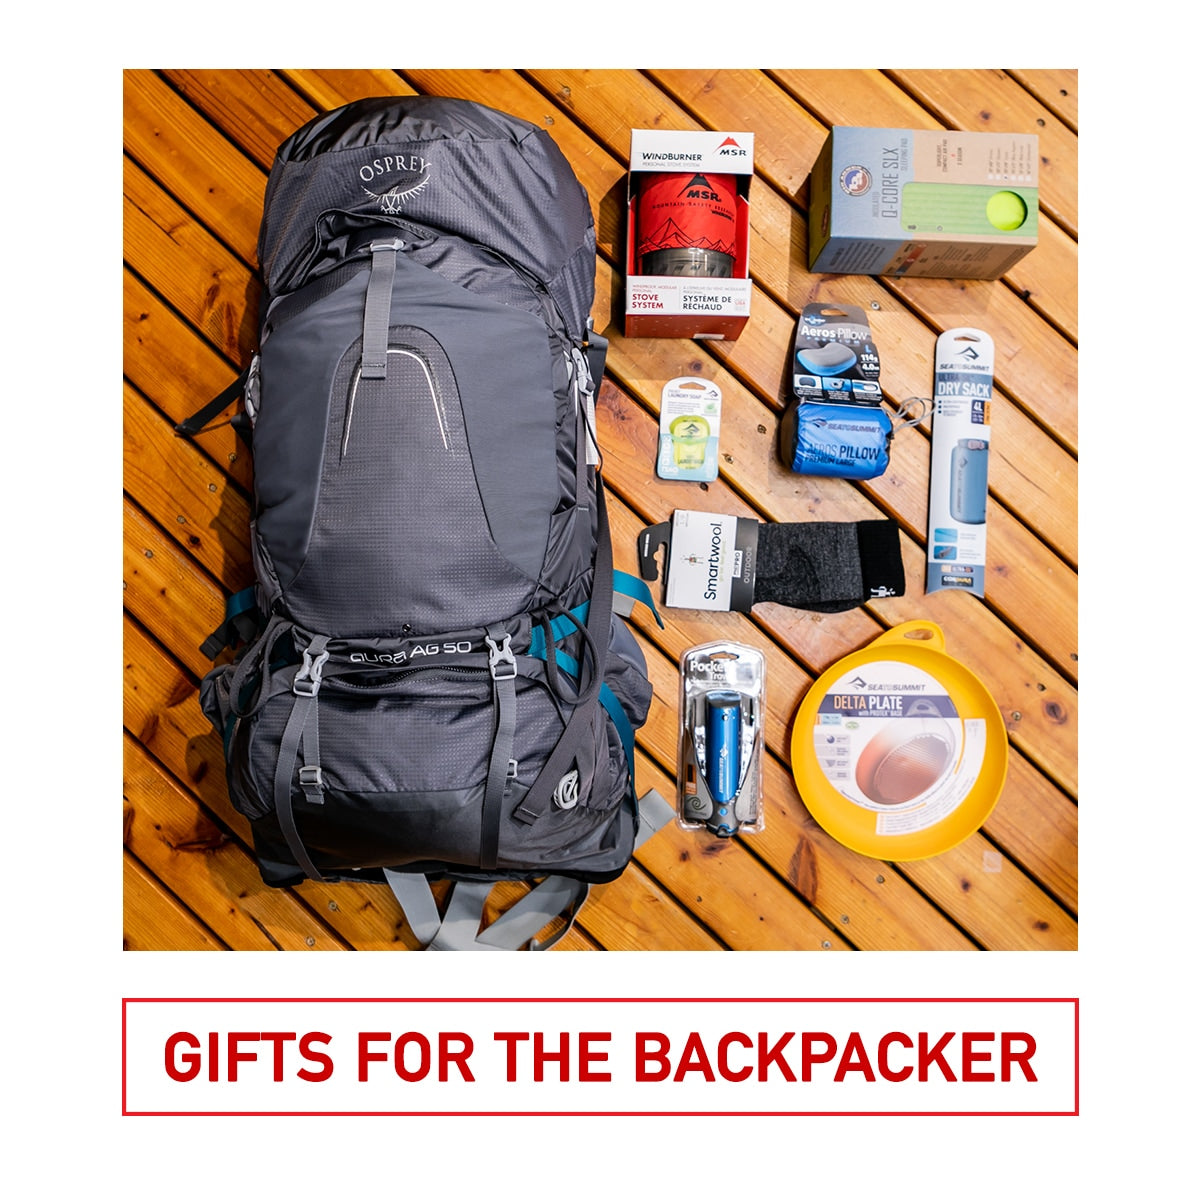 Gifts for the Backpacker